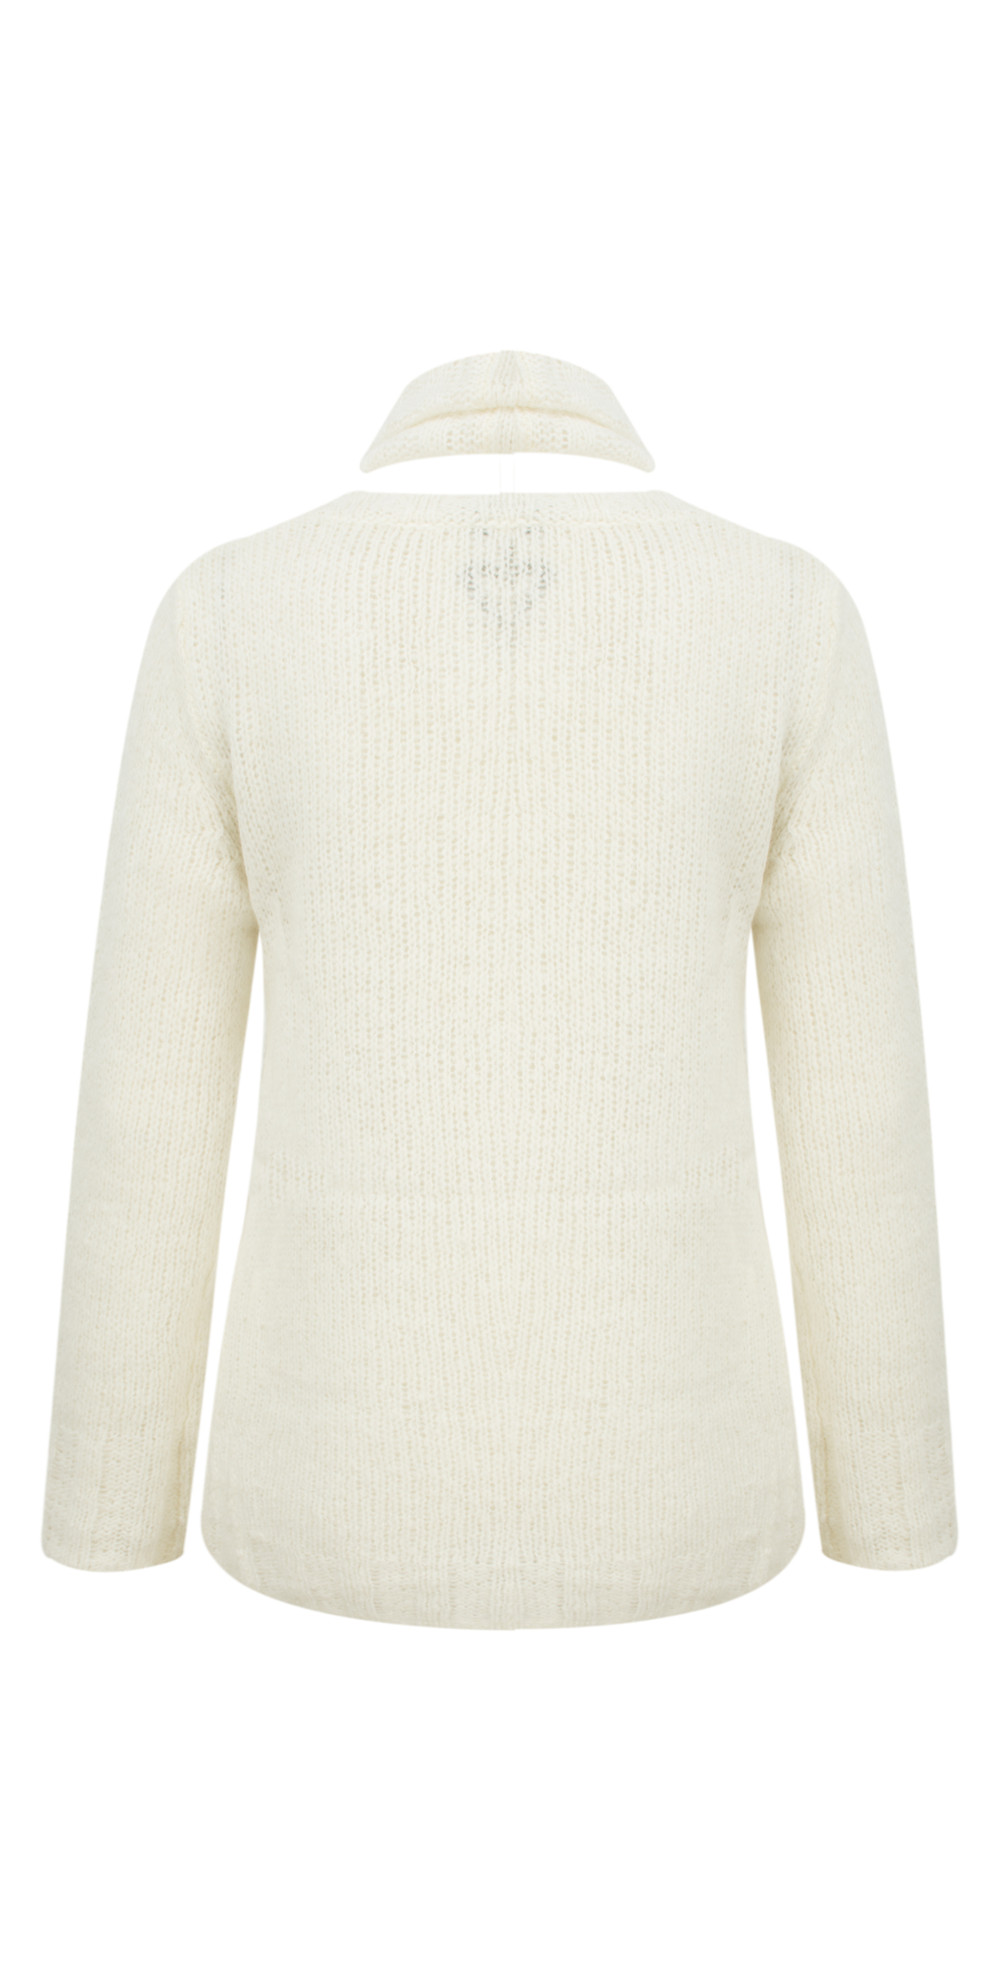 Luxe Day Knit Jumper main image